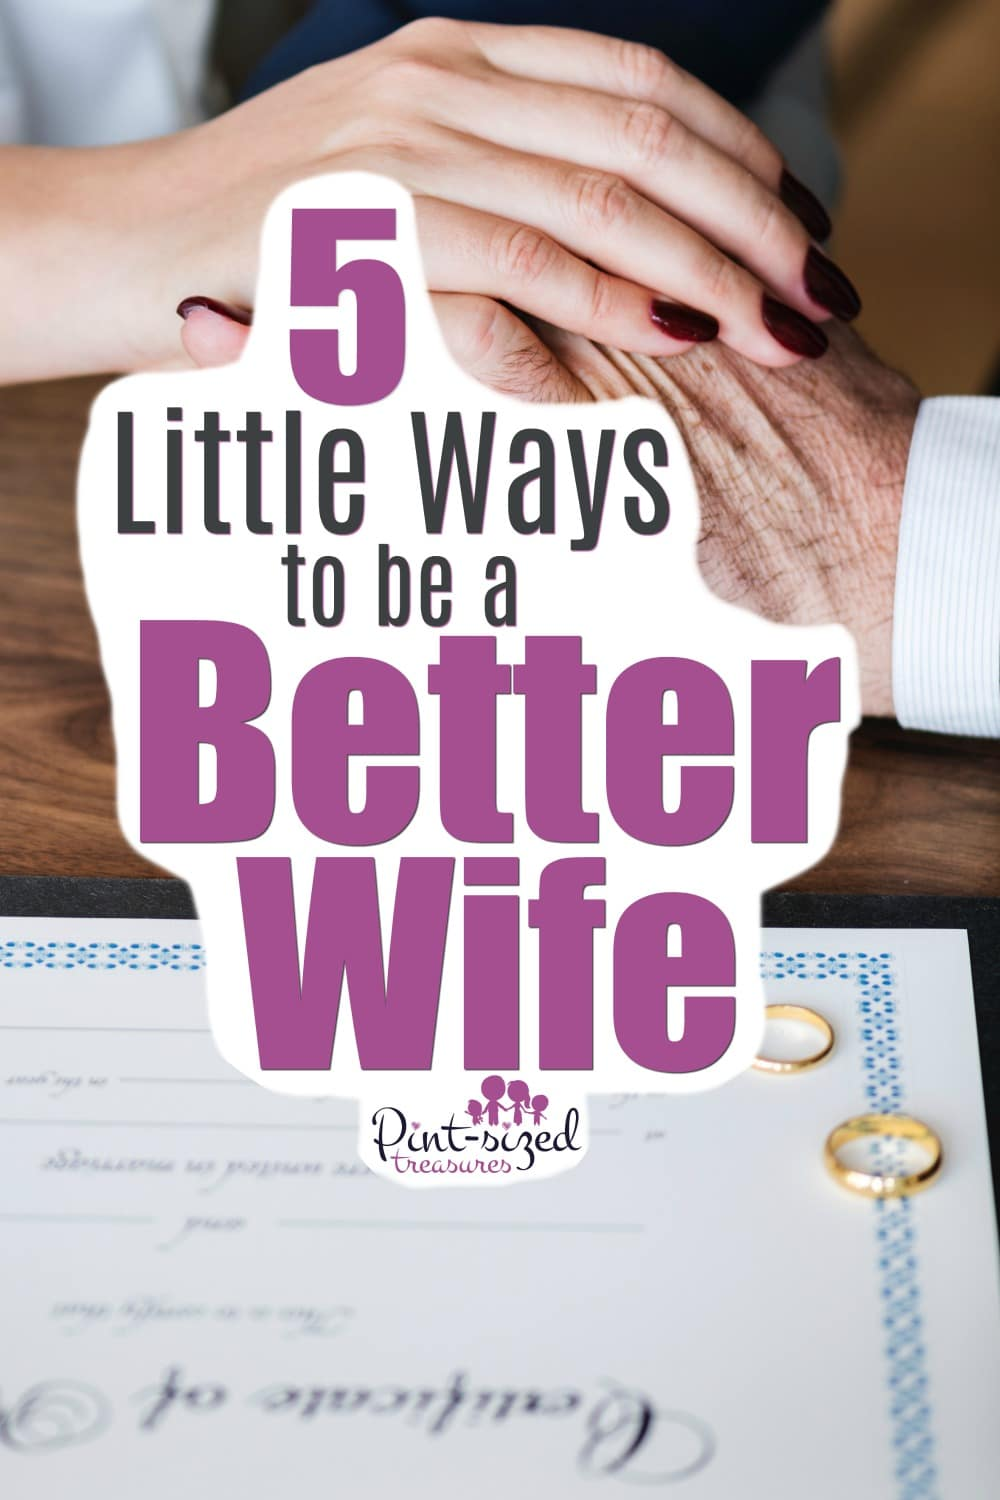 So many of us want to be better wives! Did you know simple, daily changes can make a huge difference in your marriage!  Here are five quick, little things you can do to be the wife your husband really wants! Not perfect, but better! Every wife who wants a passionate, loving marriage should read these simple, wife-to-wife tips!